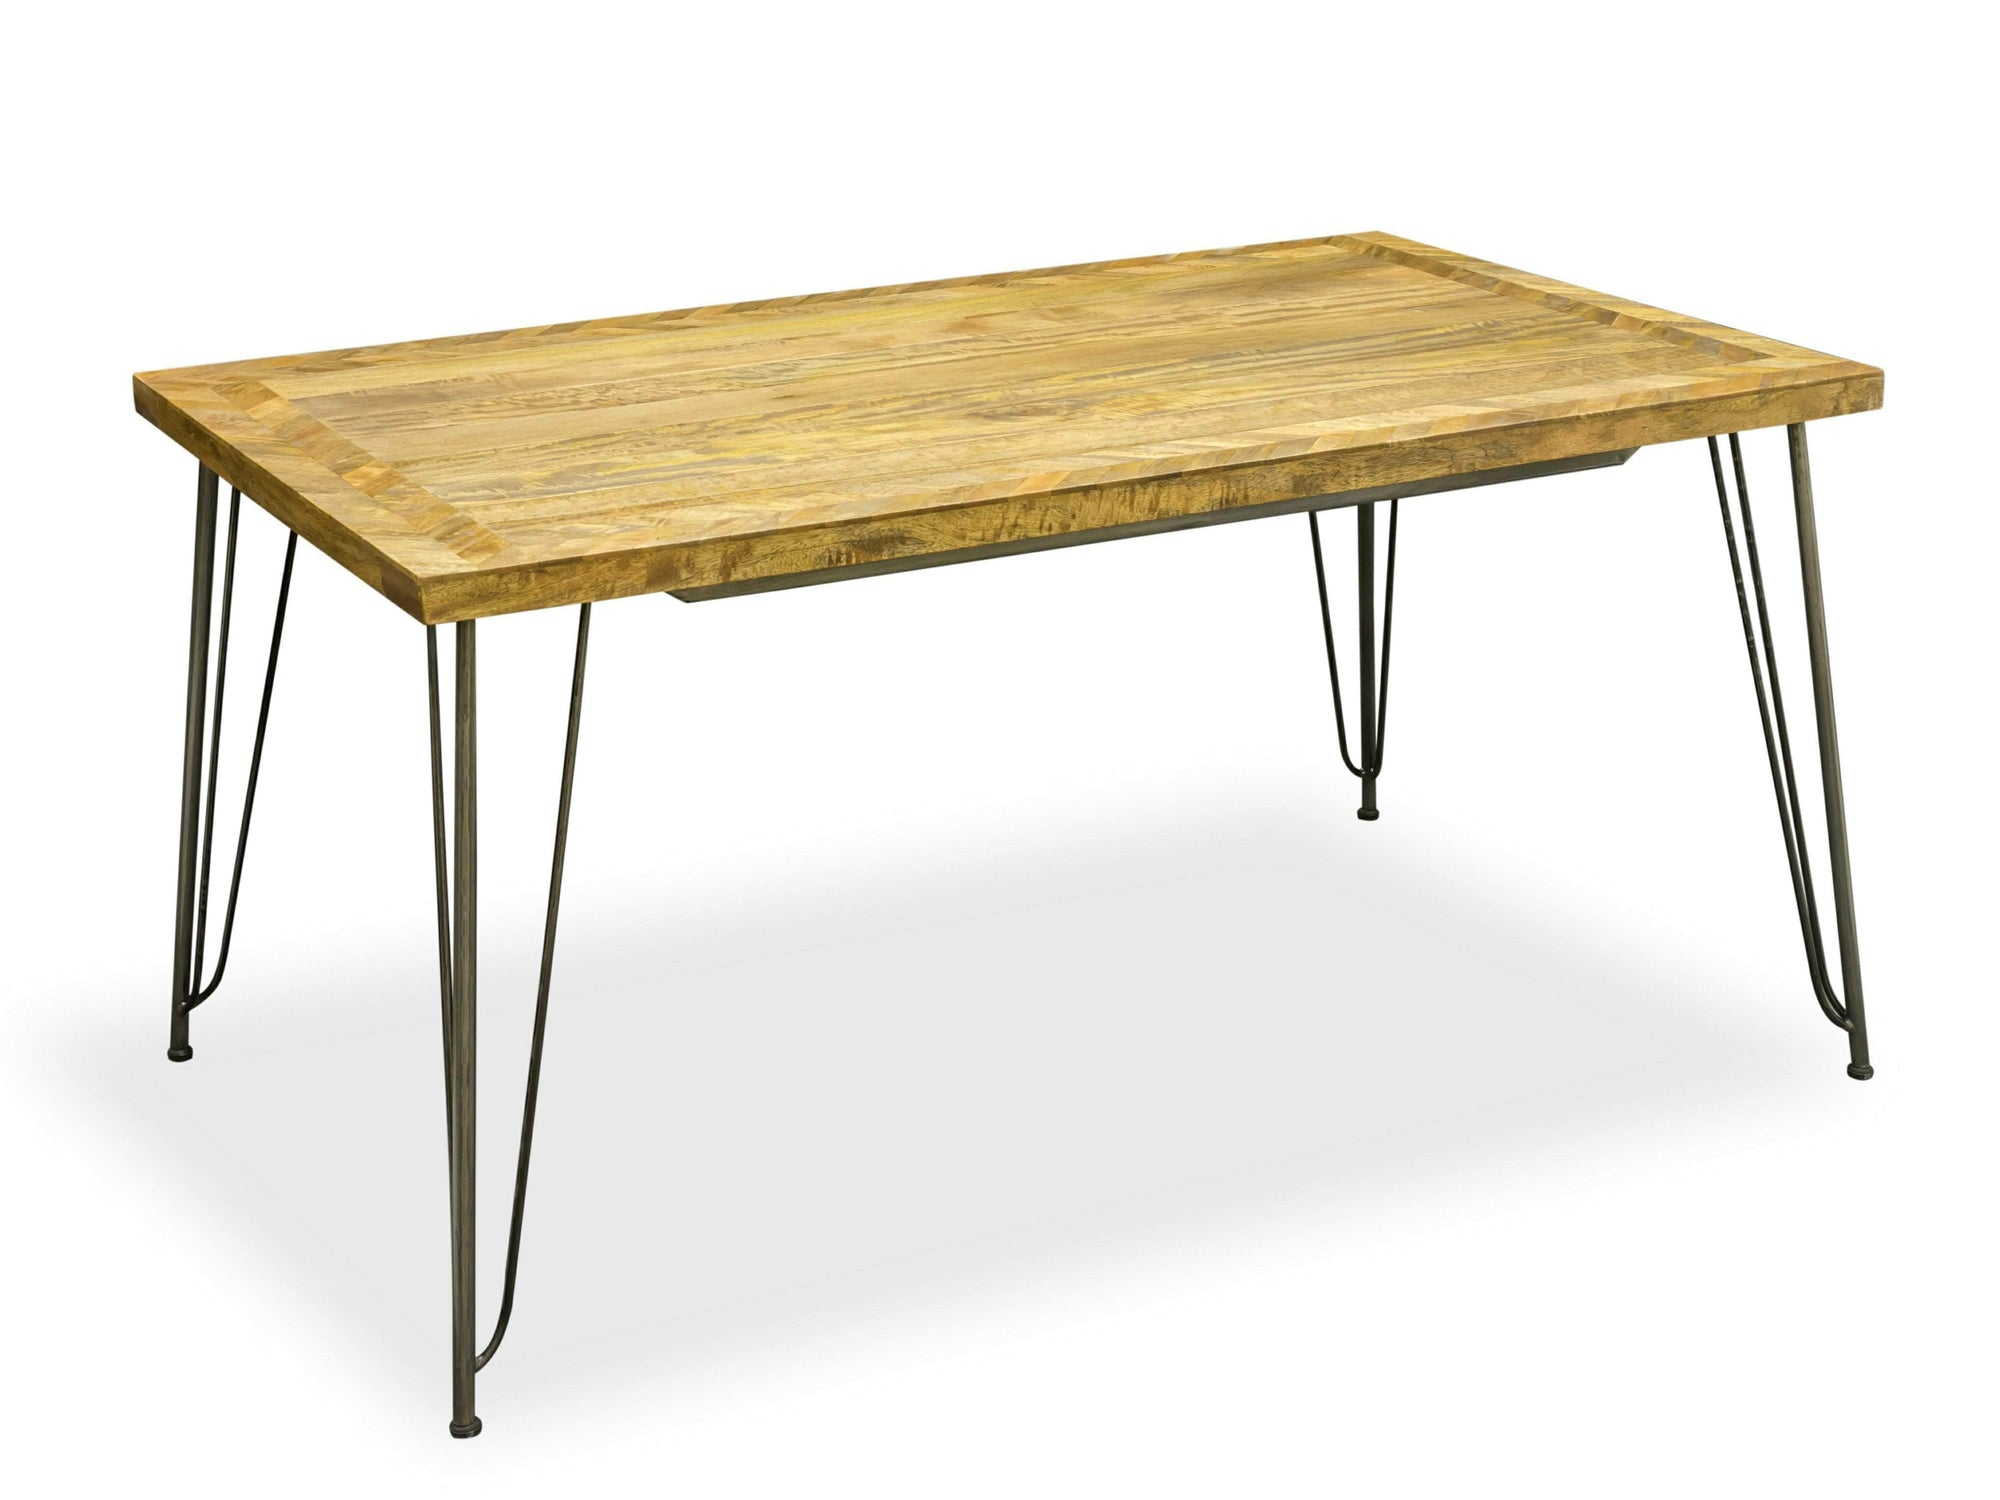 Dining table with mango wood top and steel hairpin legs